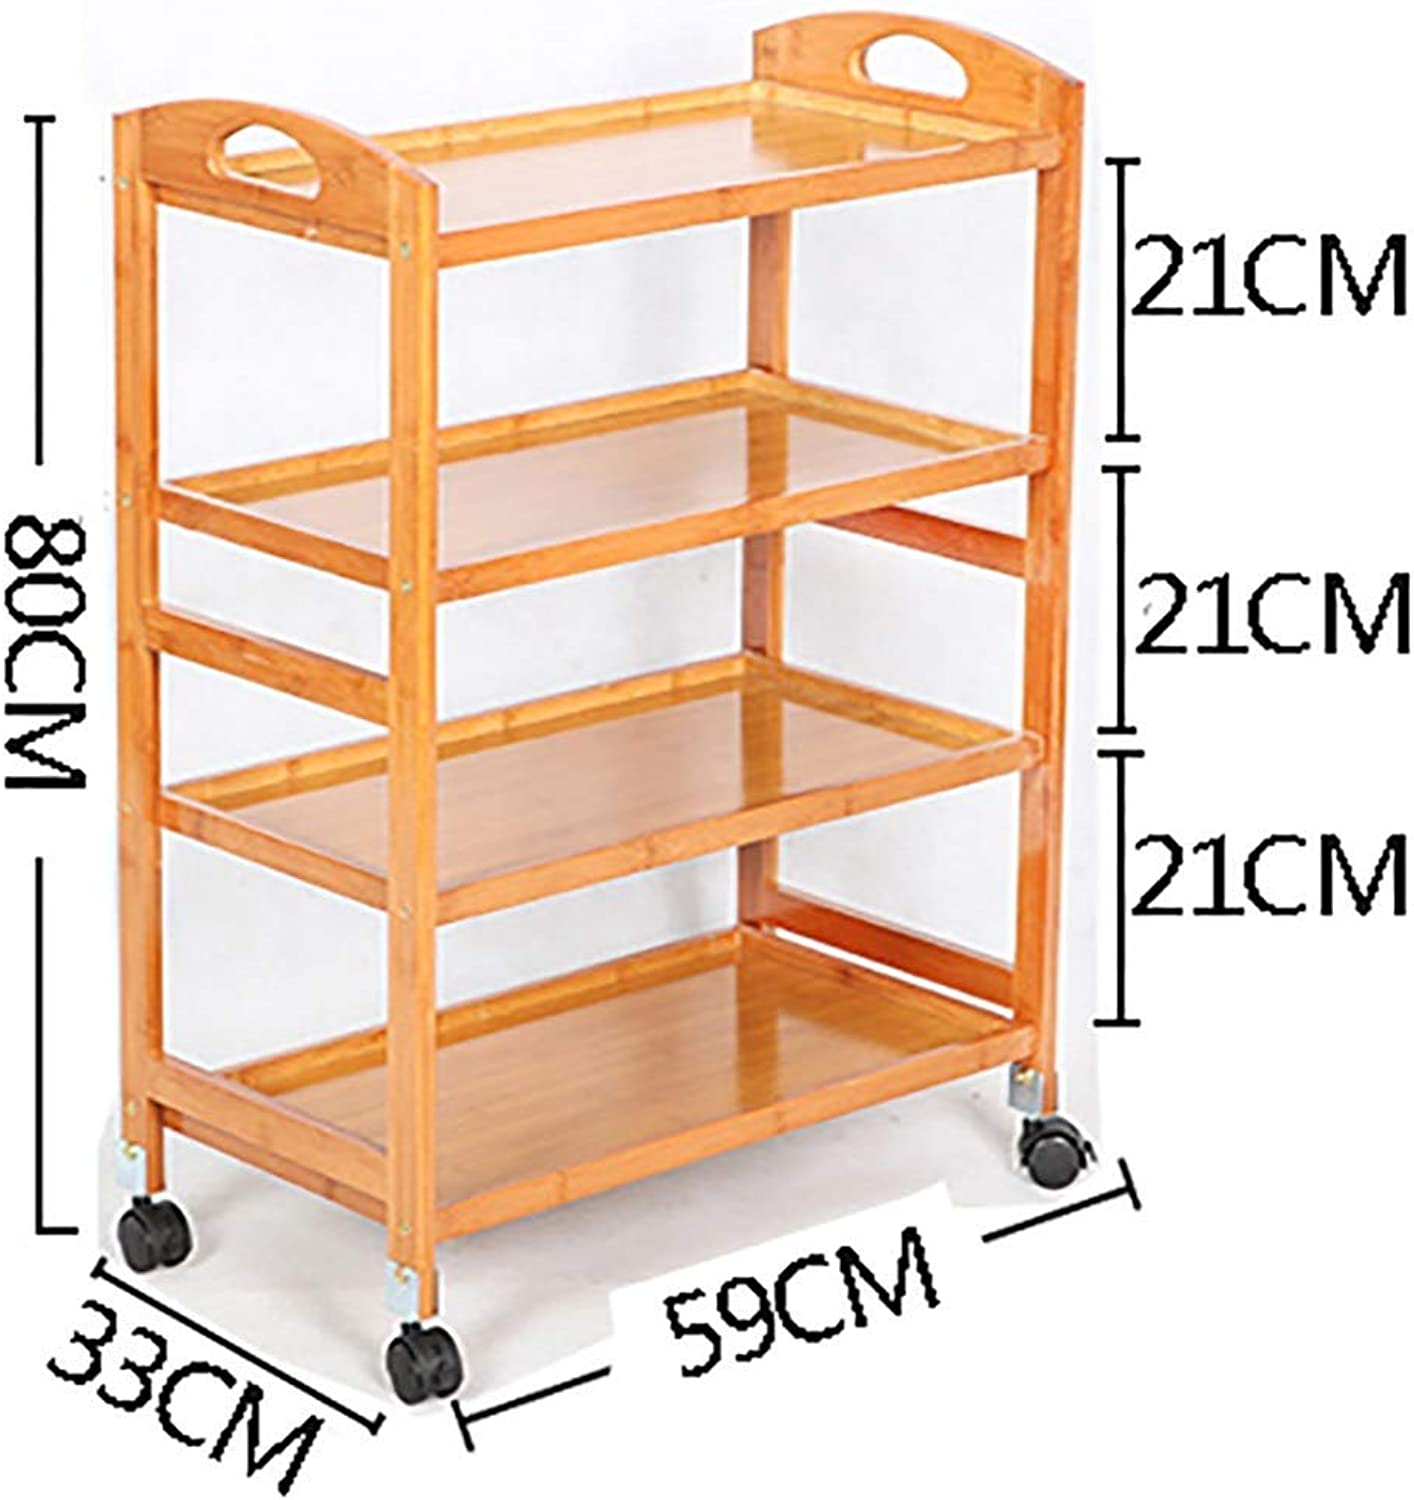 XQY Hospital Trolley, Medical Supplies Rack-Medical Cart Tool 4 Tier Beauty Salon Cart for Spa Hairdresser Tattoo, Wooden Kitchen Dining Trolley with Universal Brake Wheel, Hotel Catering Cart,Wood C